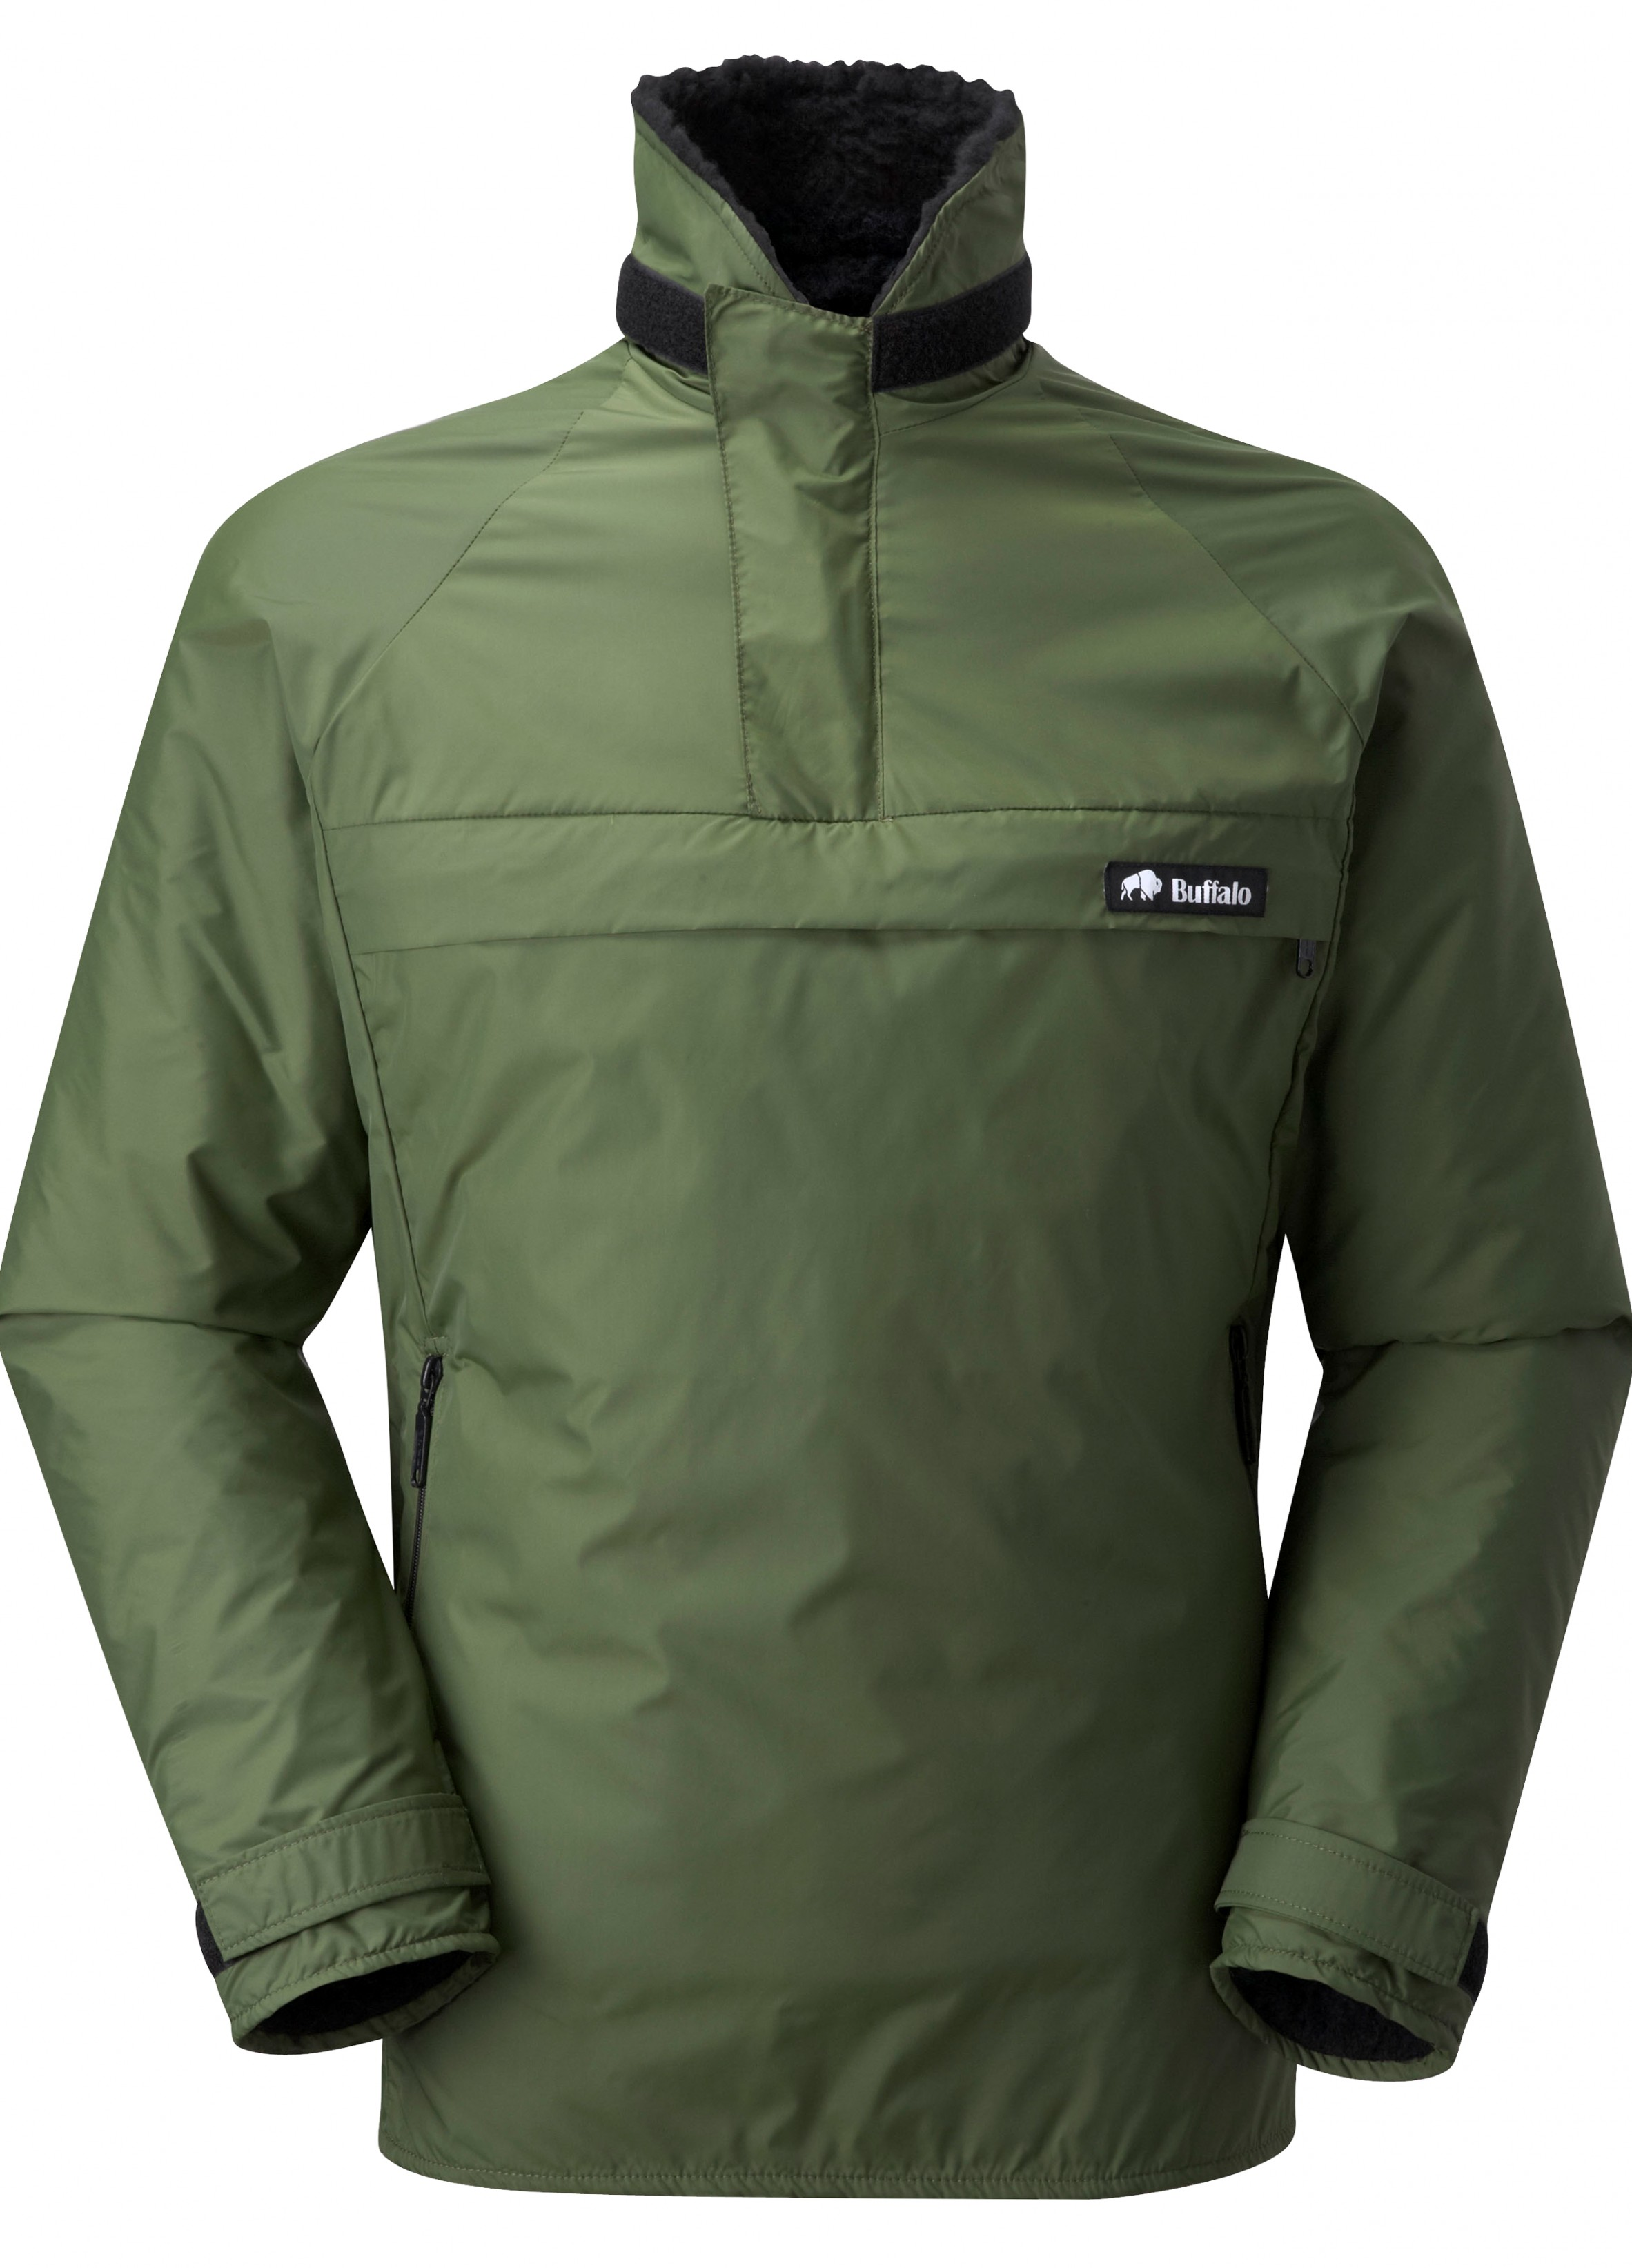 Outdoor Clothing Suppliers Uk